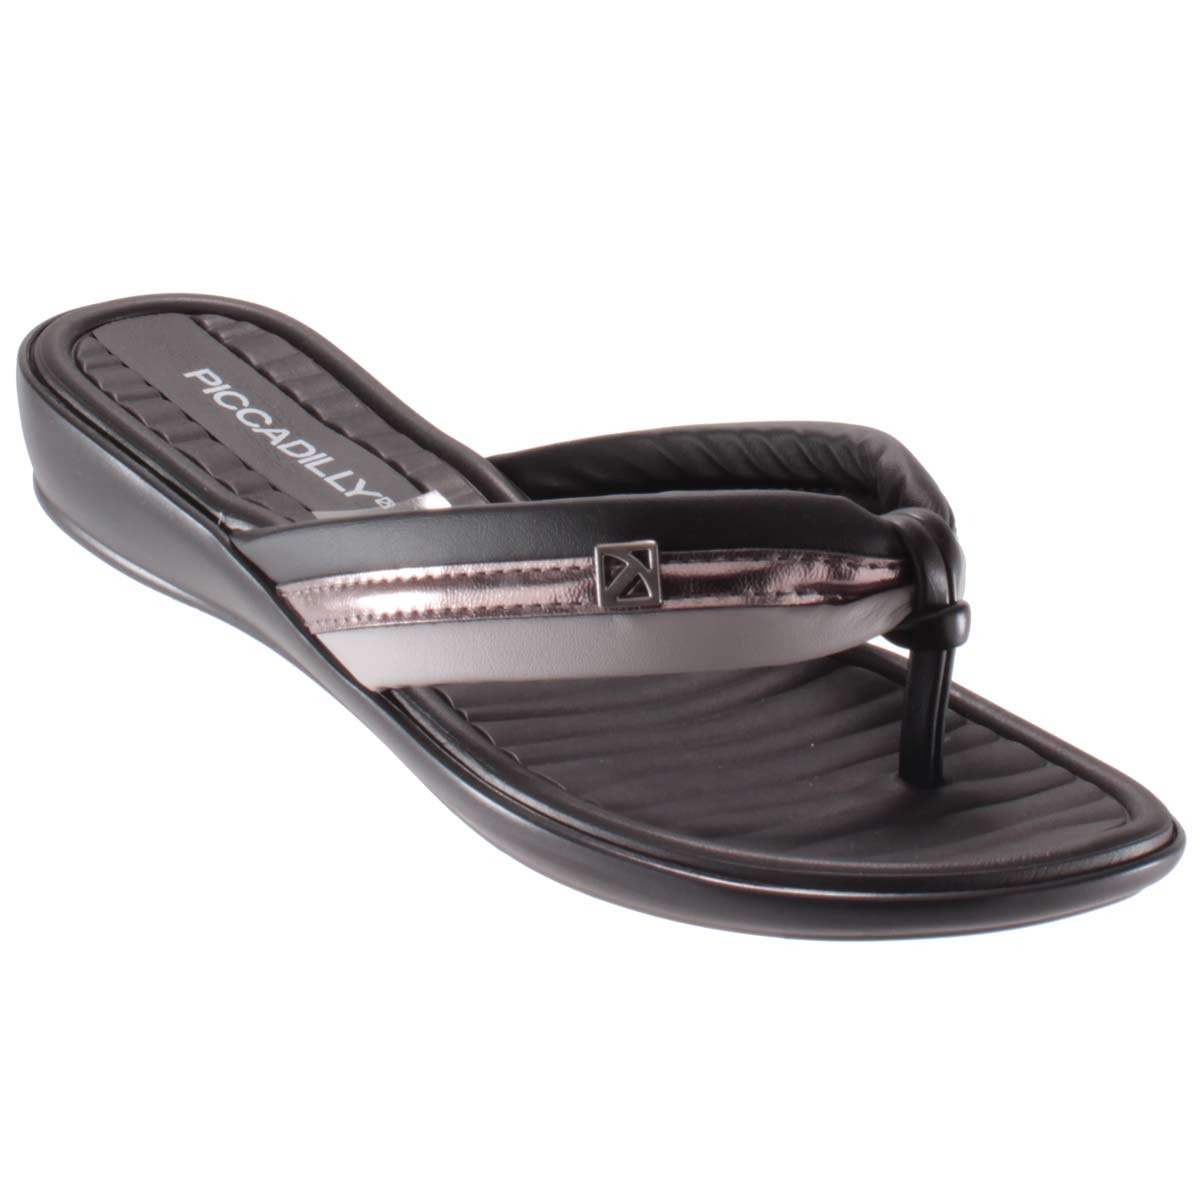 c5eeccee5 Chinelo Piccadilly Pingente Lateral Feminino - Marrom - R$ 89,75 em ...